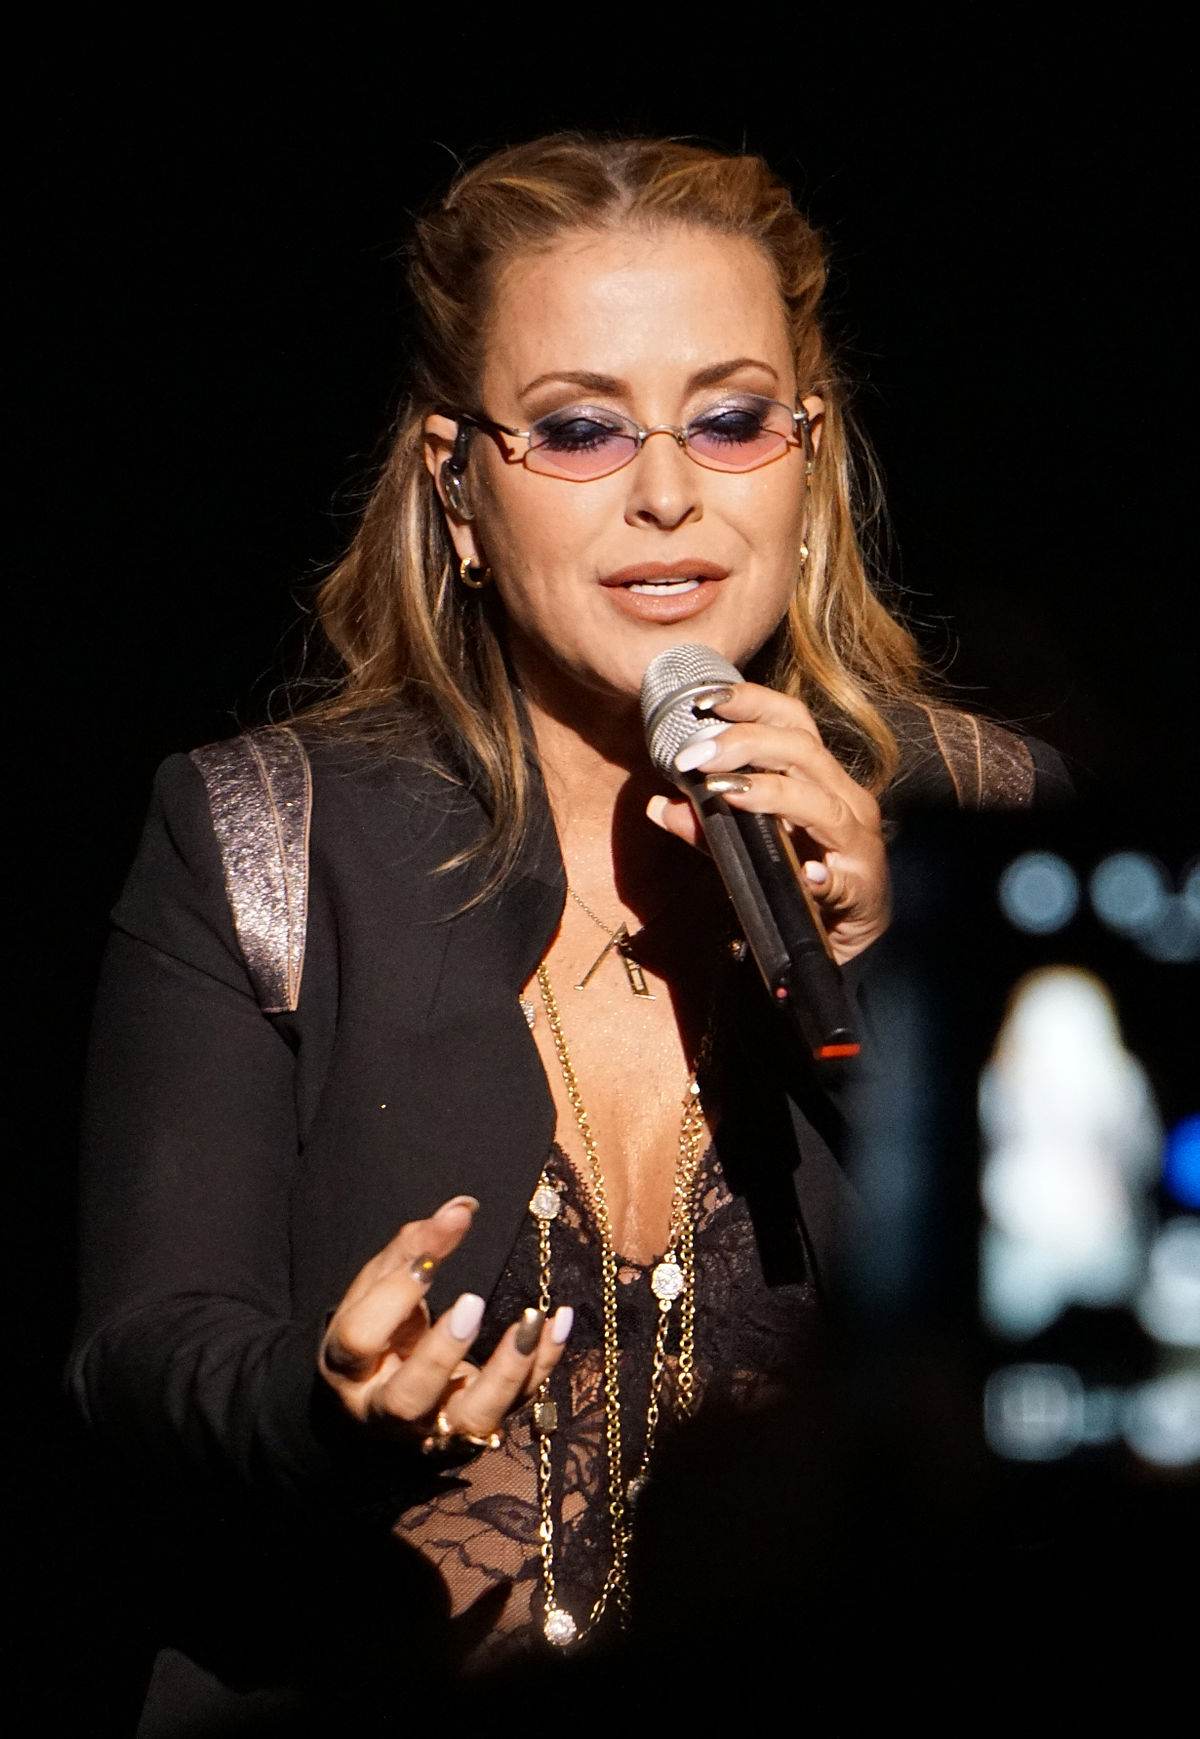 https://upload.wikimedia.org/wikipedia/commons/thumb/9/93/Anastacia_Resurrection_Tour_%28London%29.jpg/1200px-Anastacia_Resurrection_Tour_%28London%29.jpg